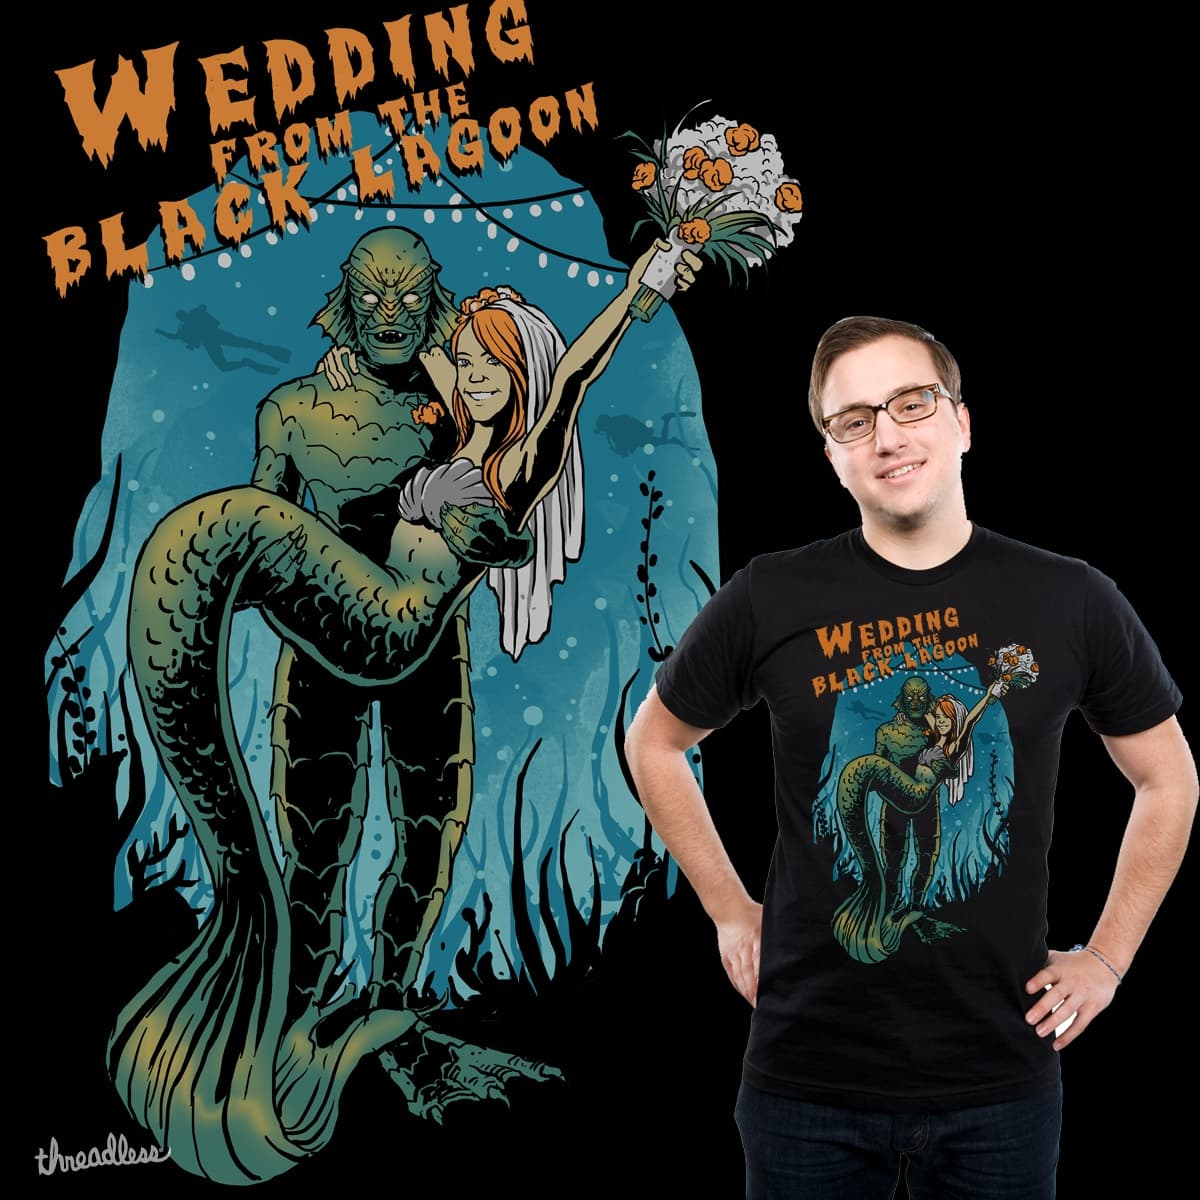 wedding from the black lagoon by ndrue182 on Threadless